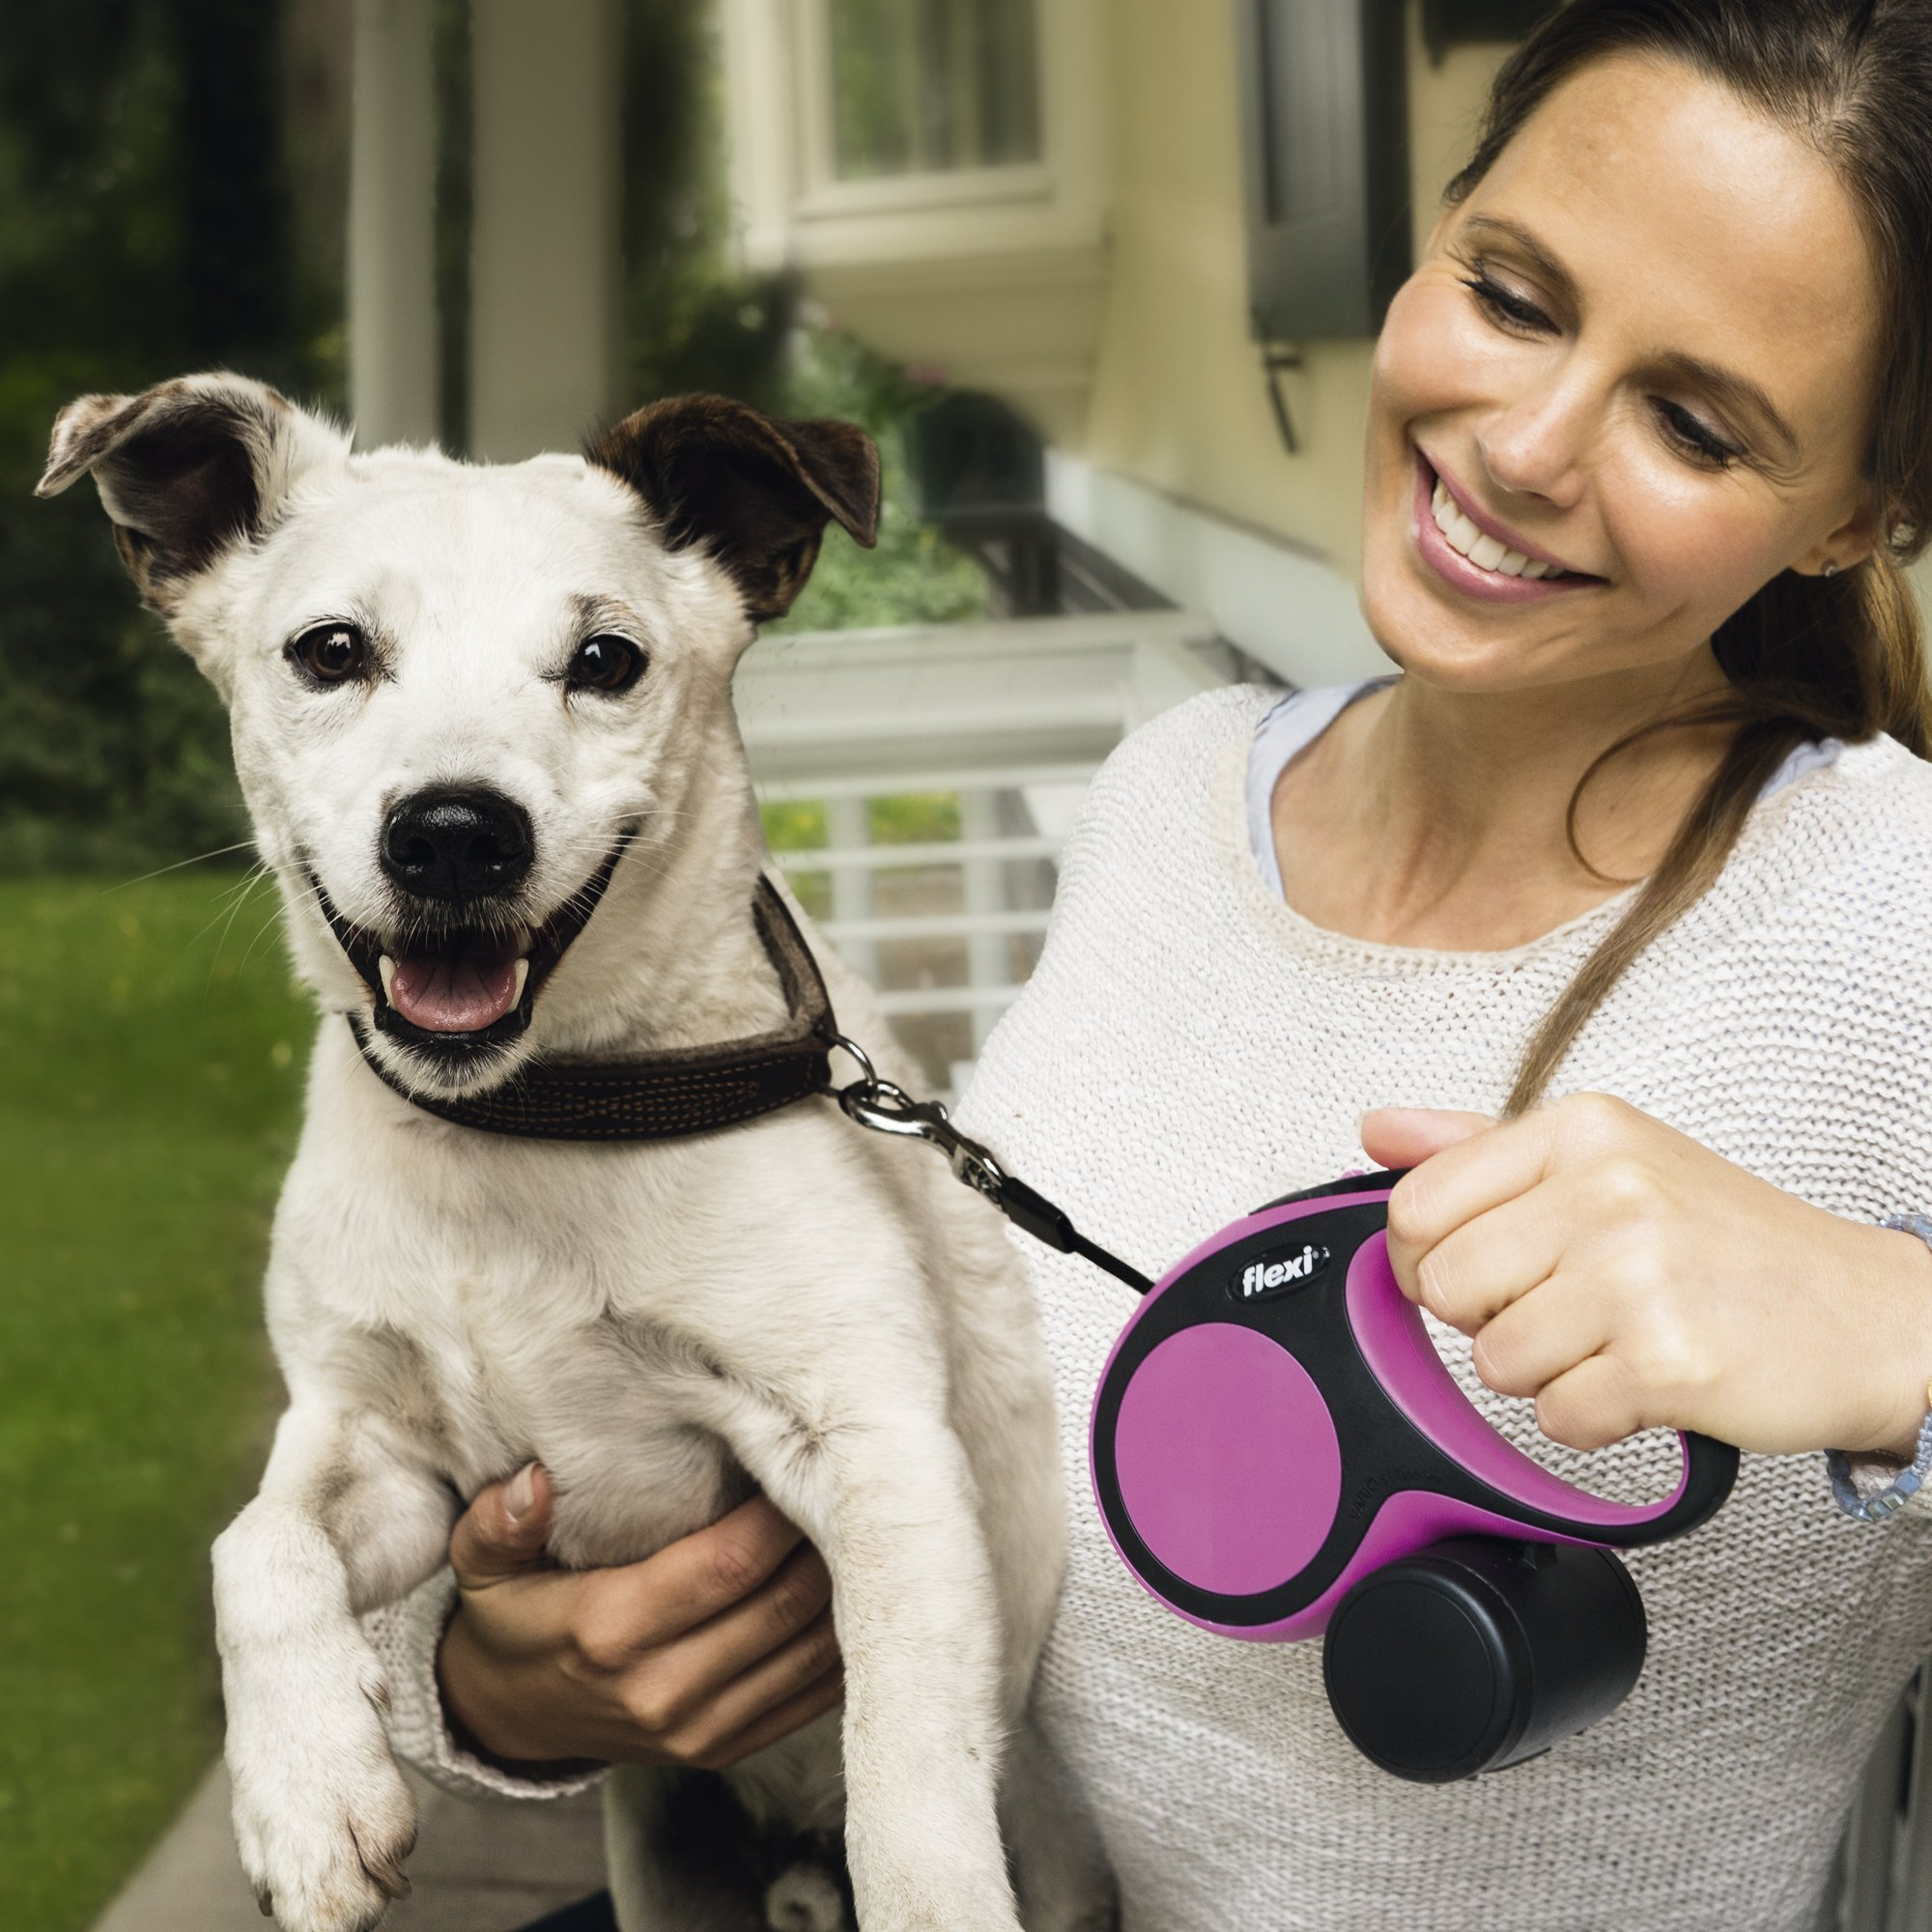 Flexi New Comfort Retractable Dog Leash (Tape), 16 ft, Medium, Grey by Flexi (Image #6)